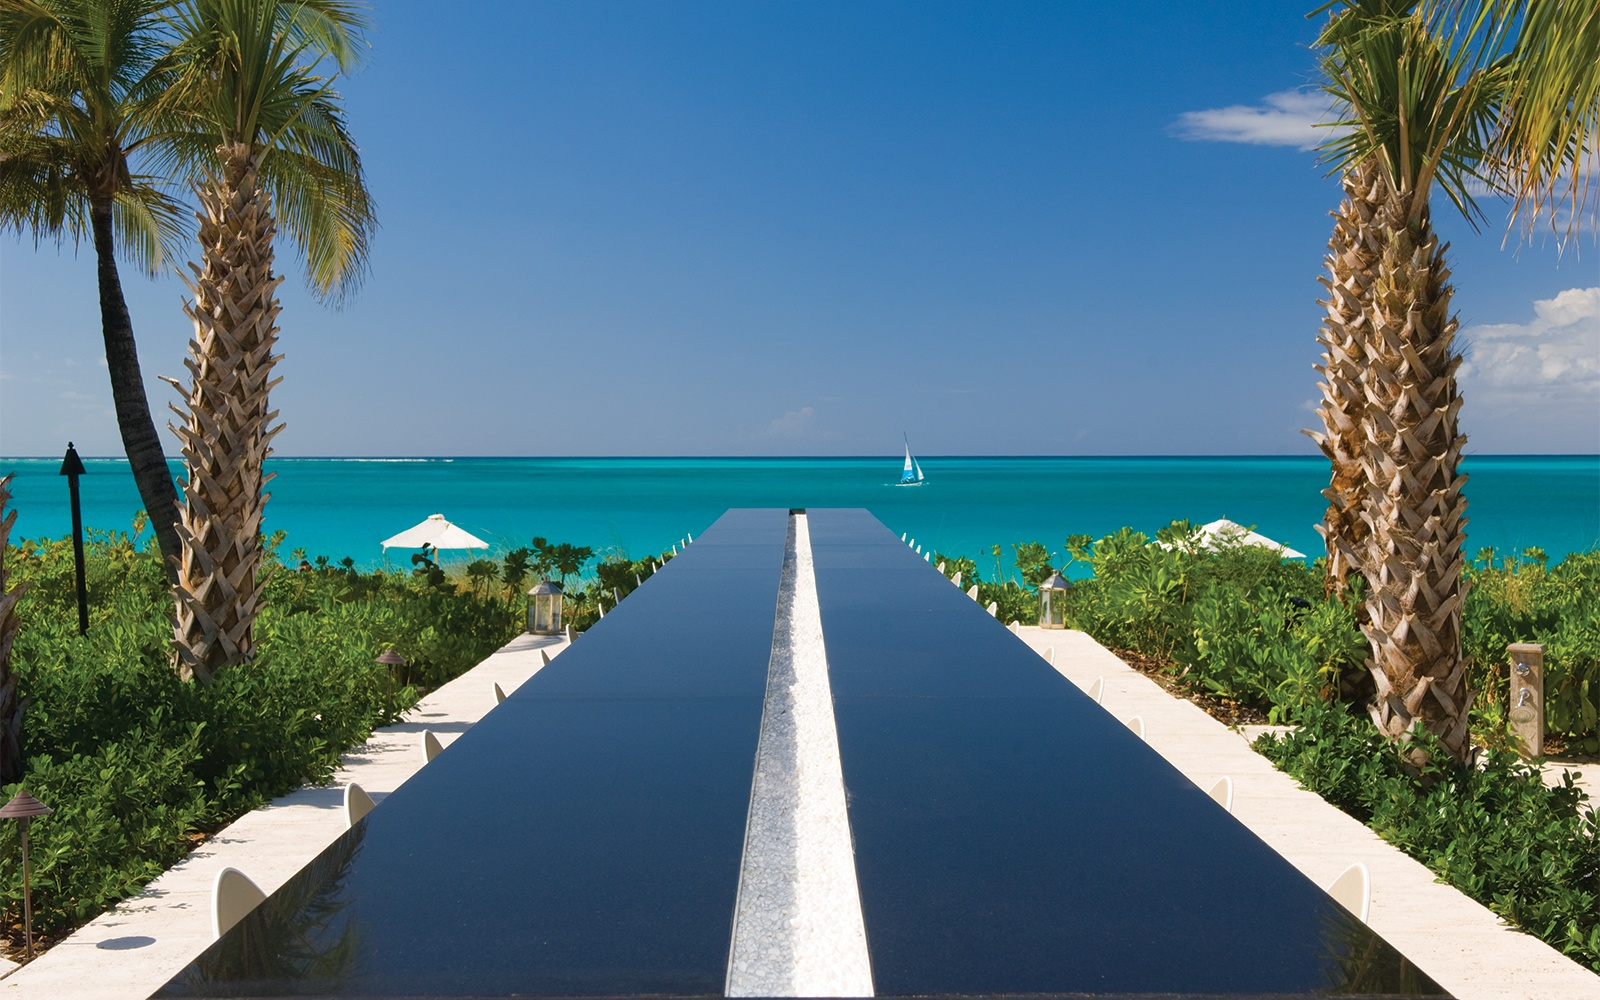 No. 8: Grace Bay Club, Turks and Caicos